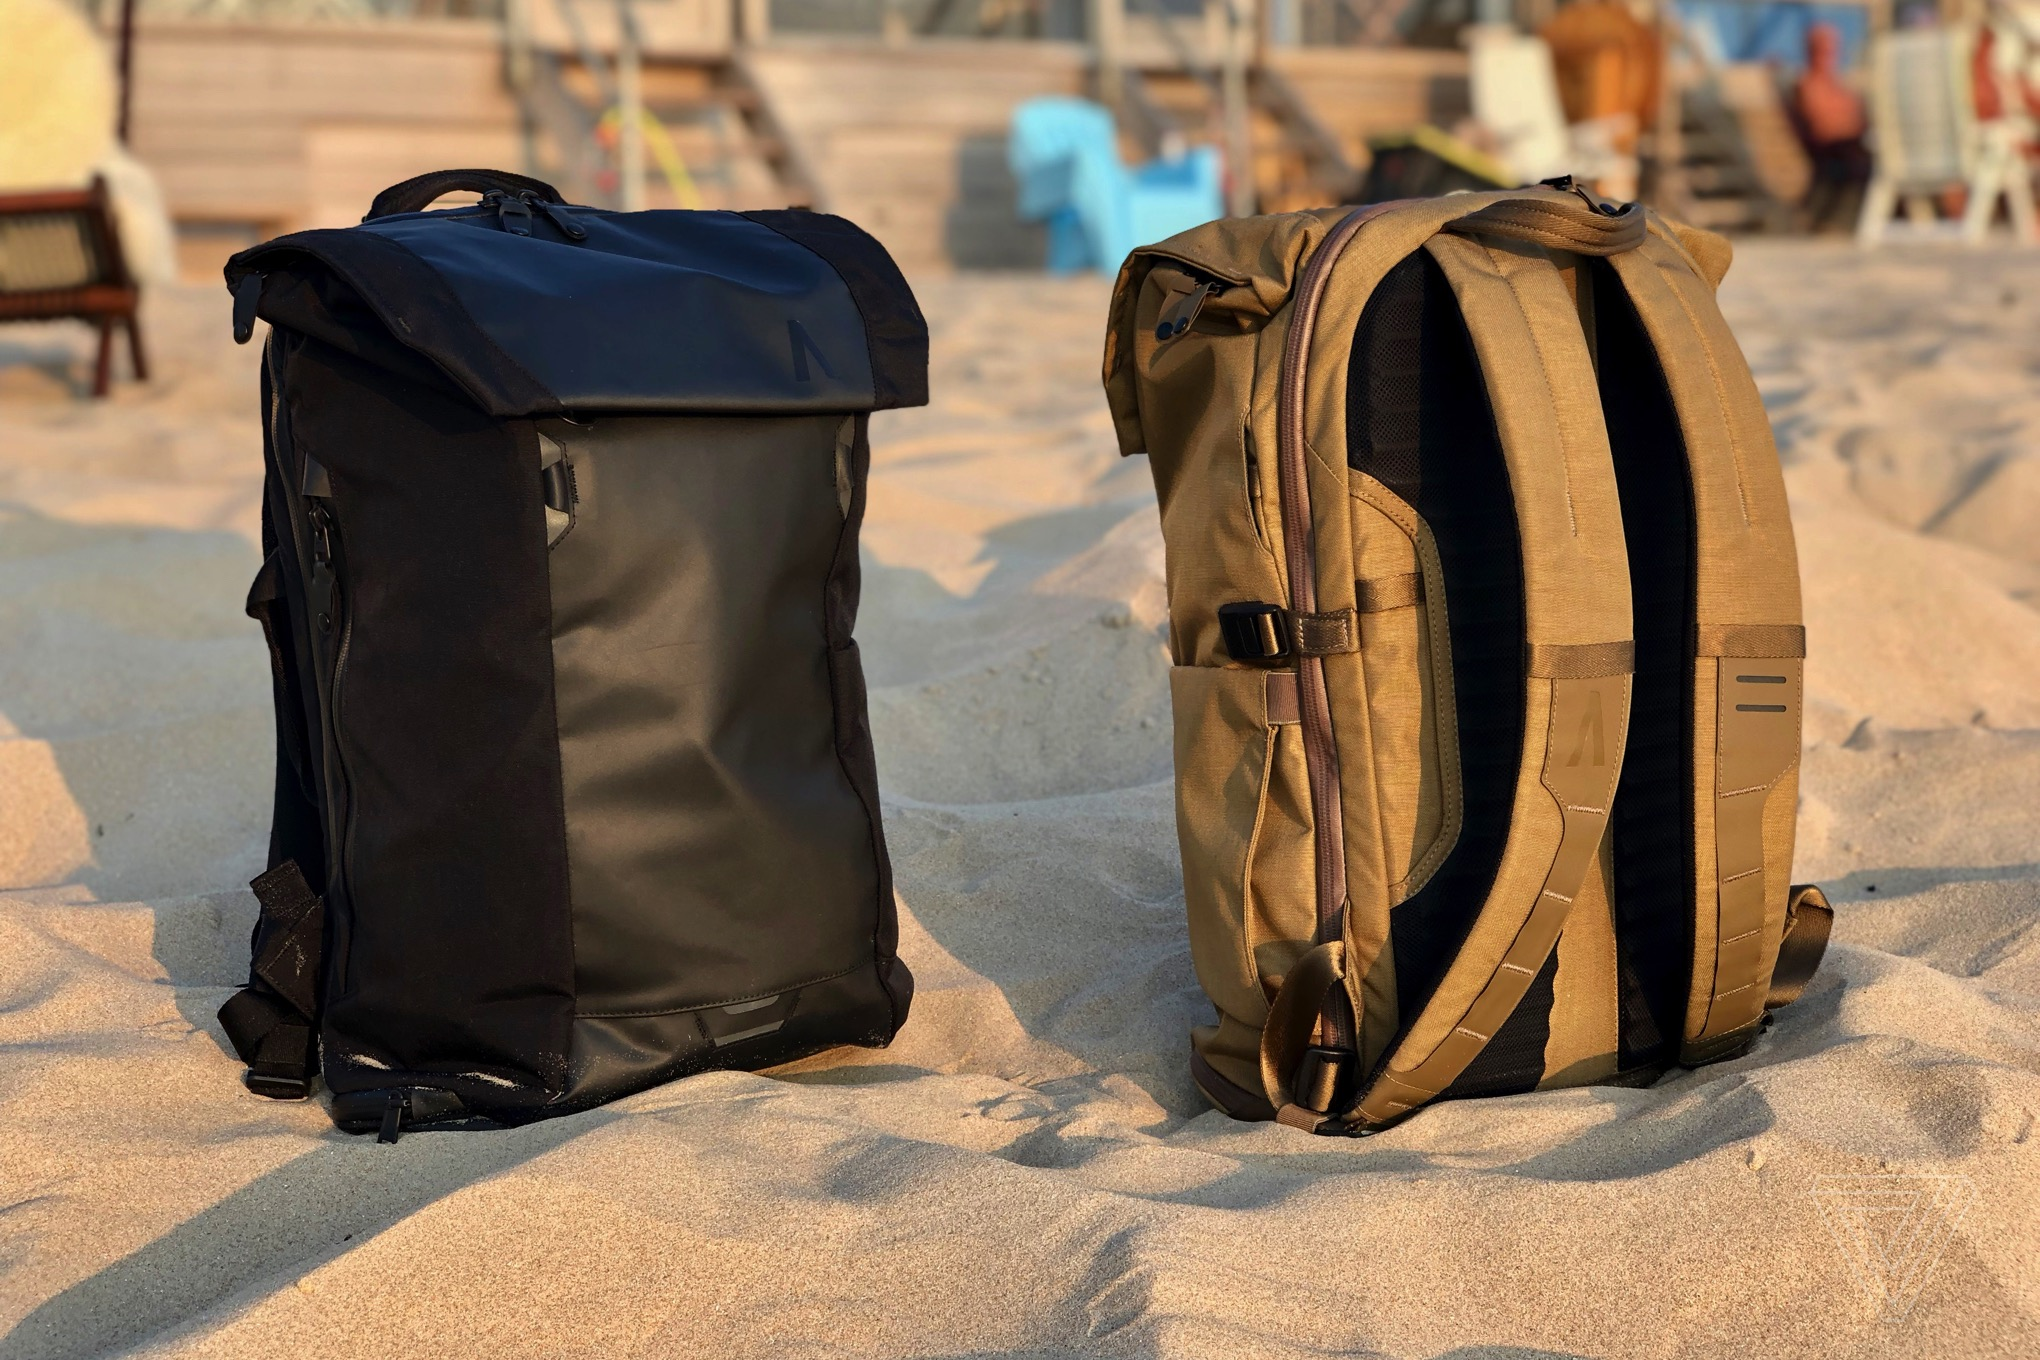 ed5d788f0a Boundary Errant backpack review  irresistible at  100